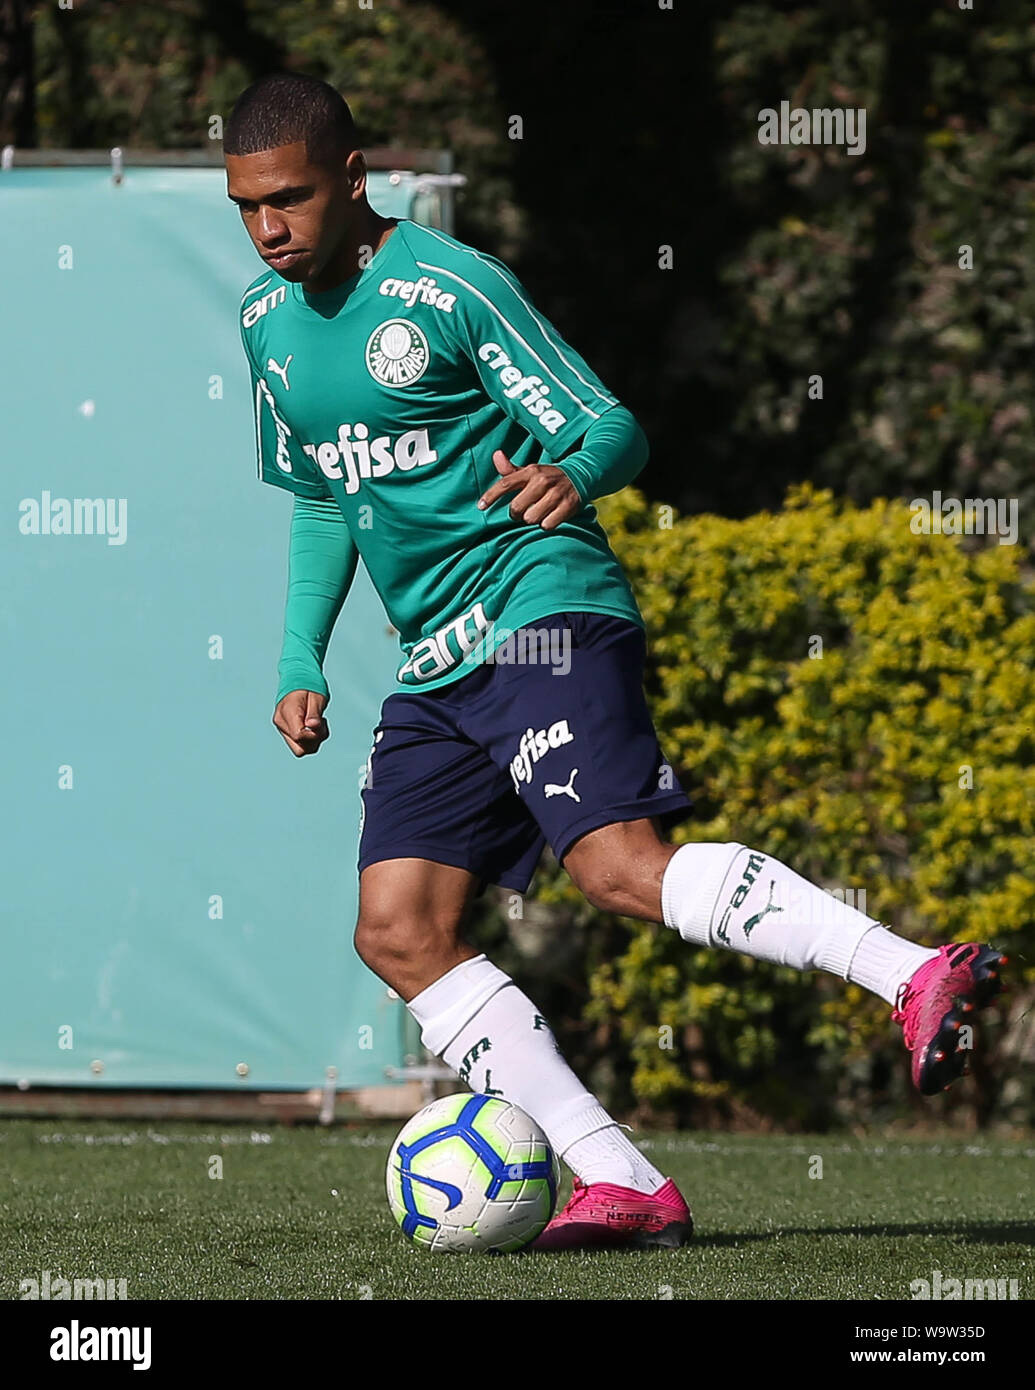 Sao Paulo Brazil 15th Aug 2019 Lucas Esteves From Se Palmeiras During Training At The Football Academy Credit Foto Arena Ltda Alamy Live News Stock Photo Alamy